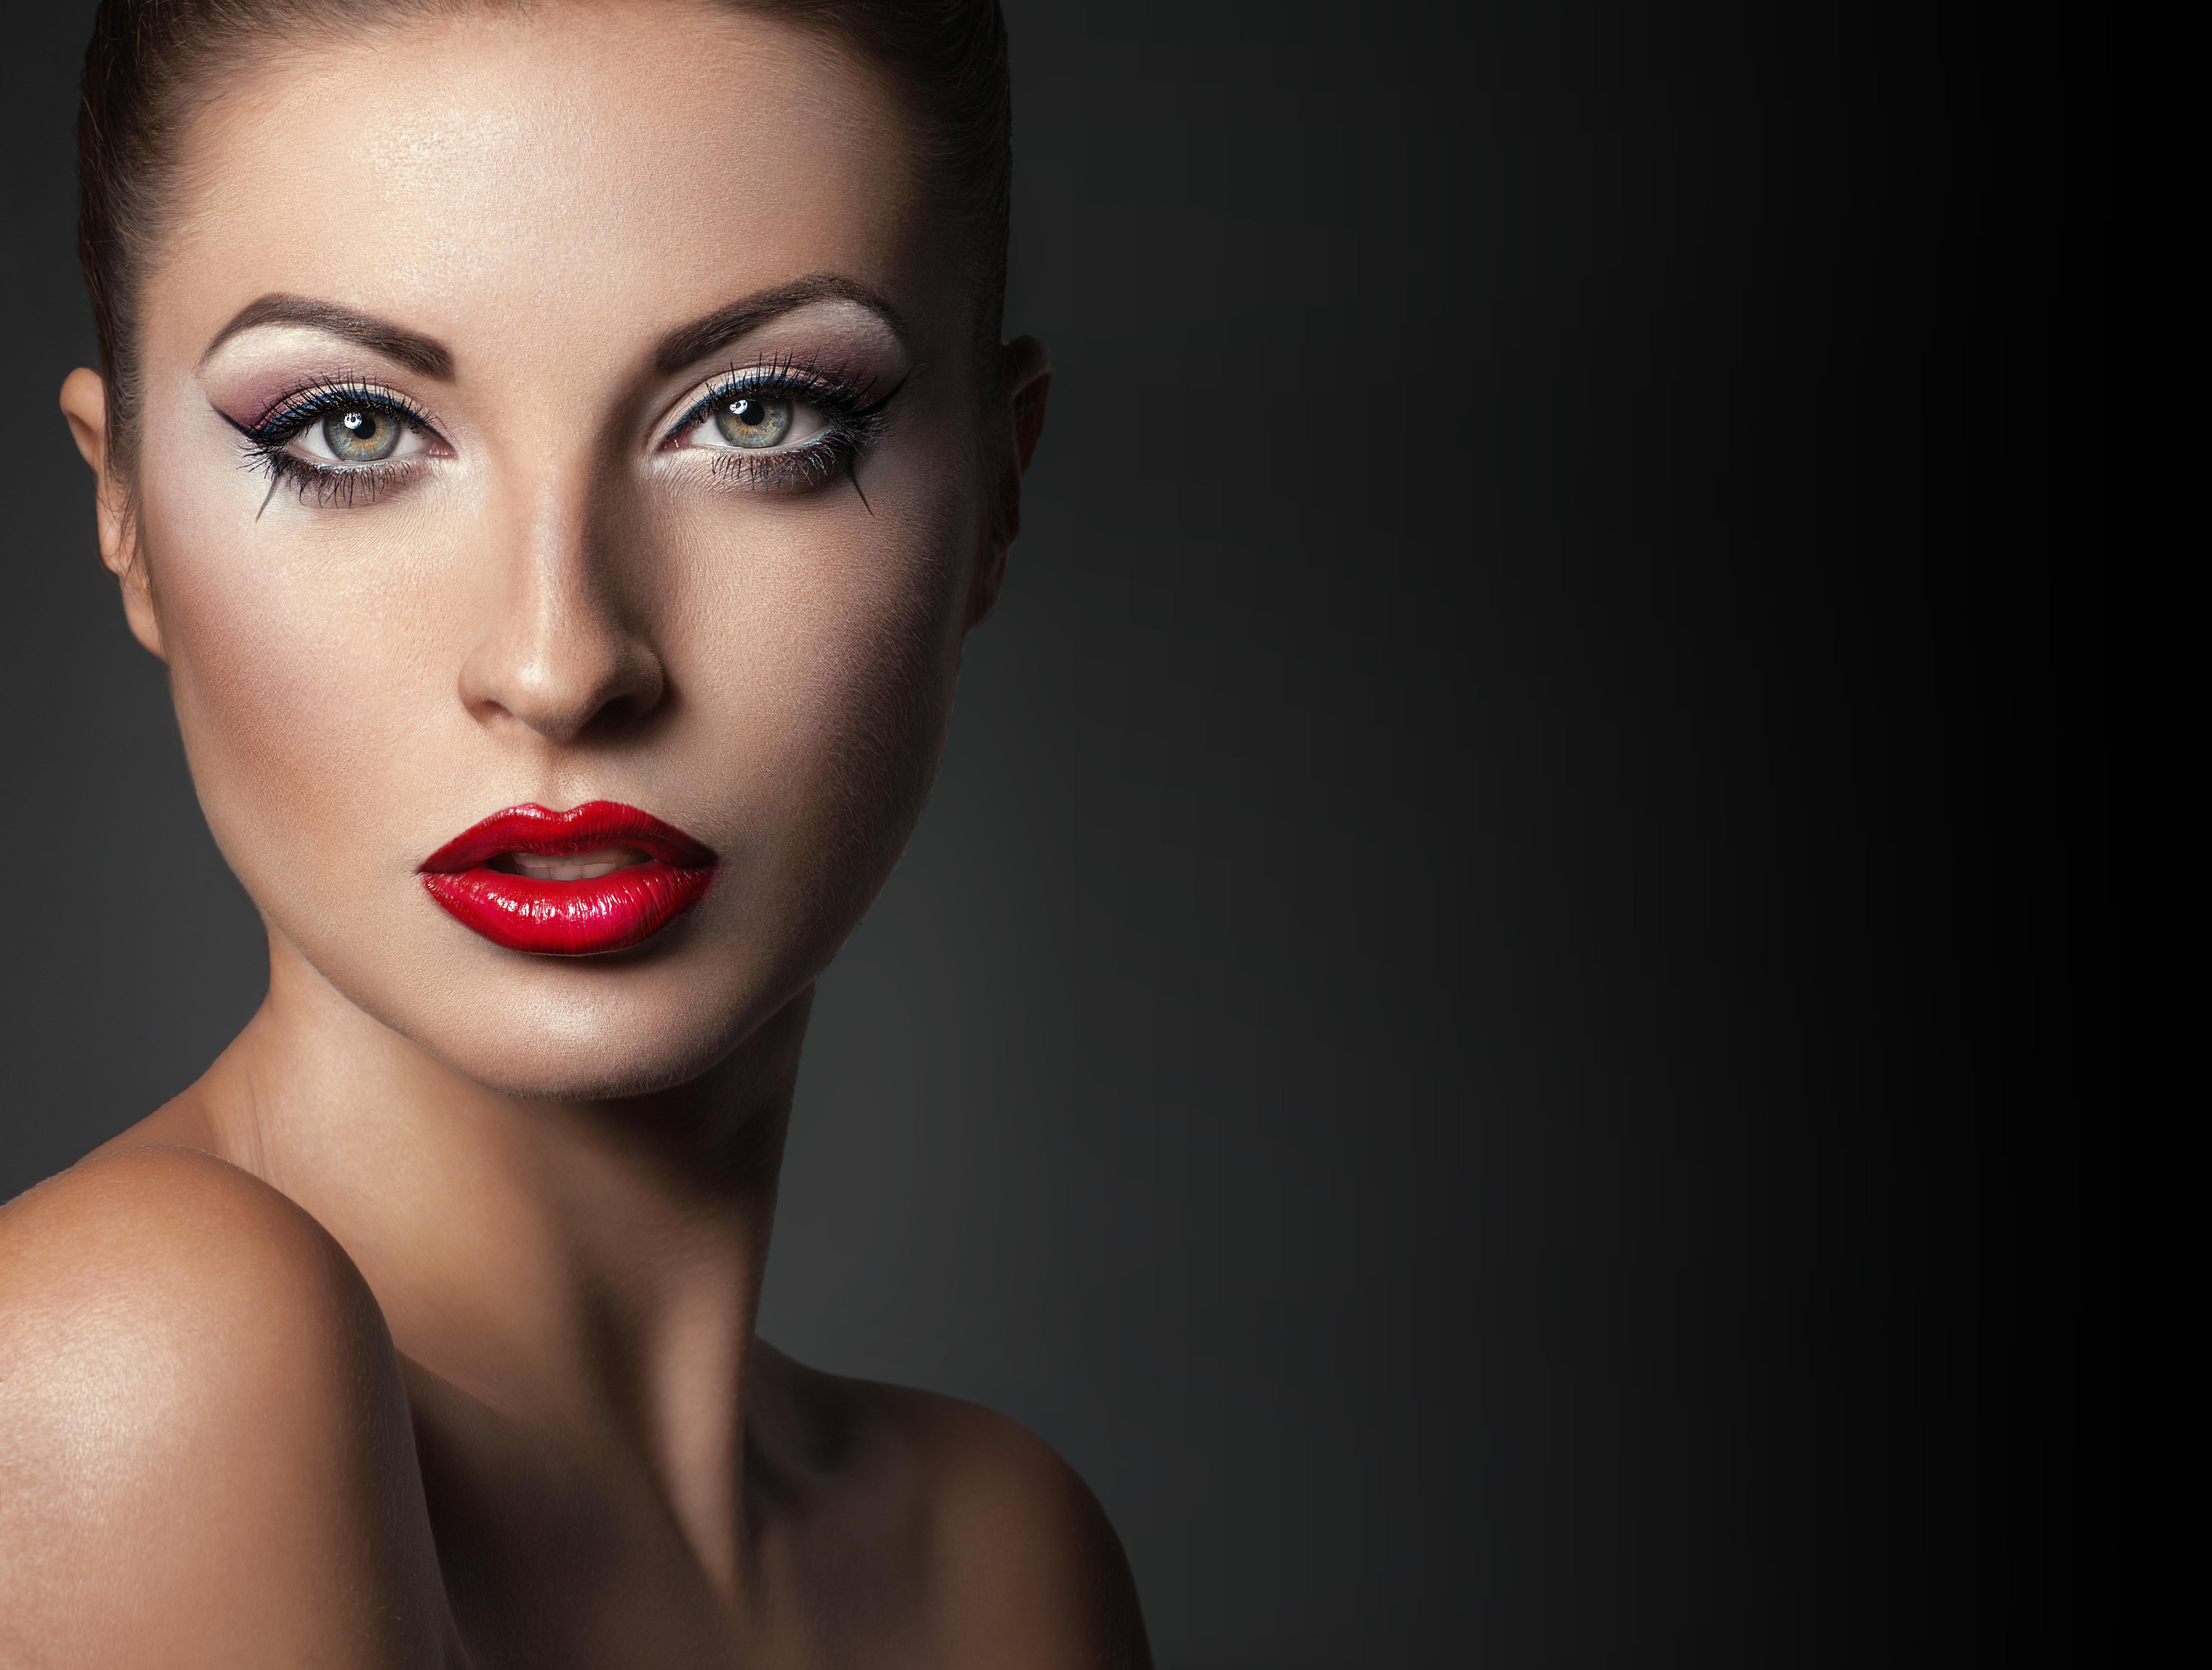 648818-red-lips-photo